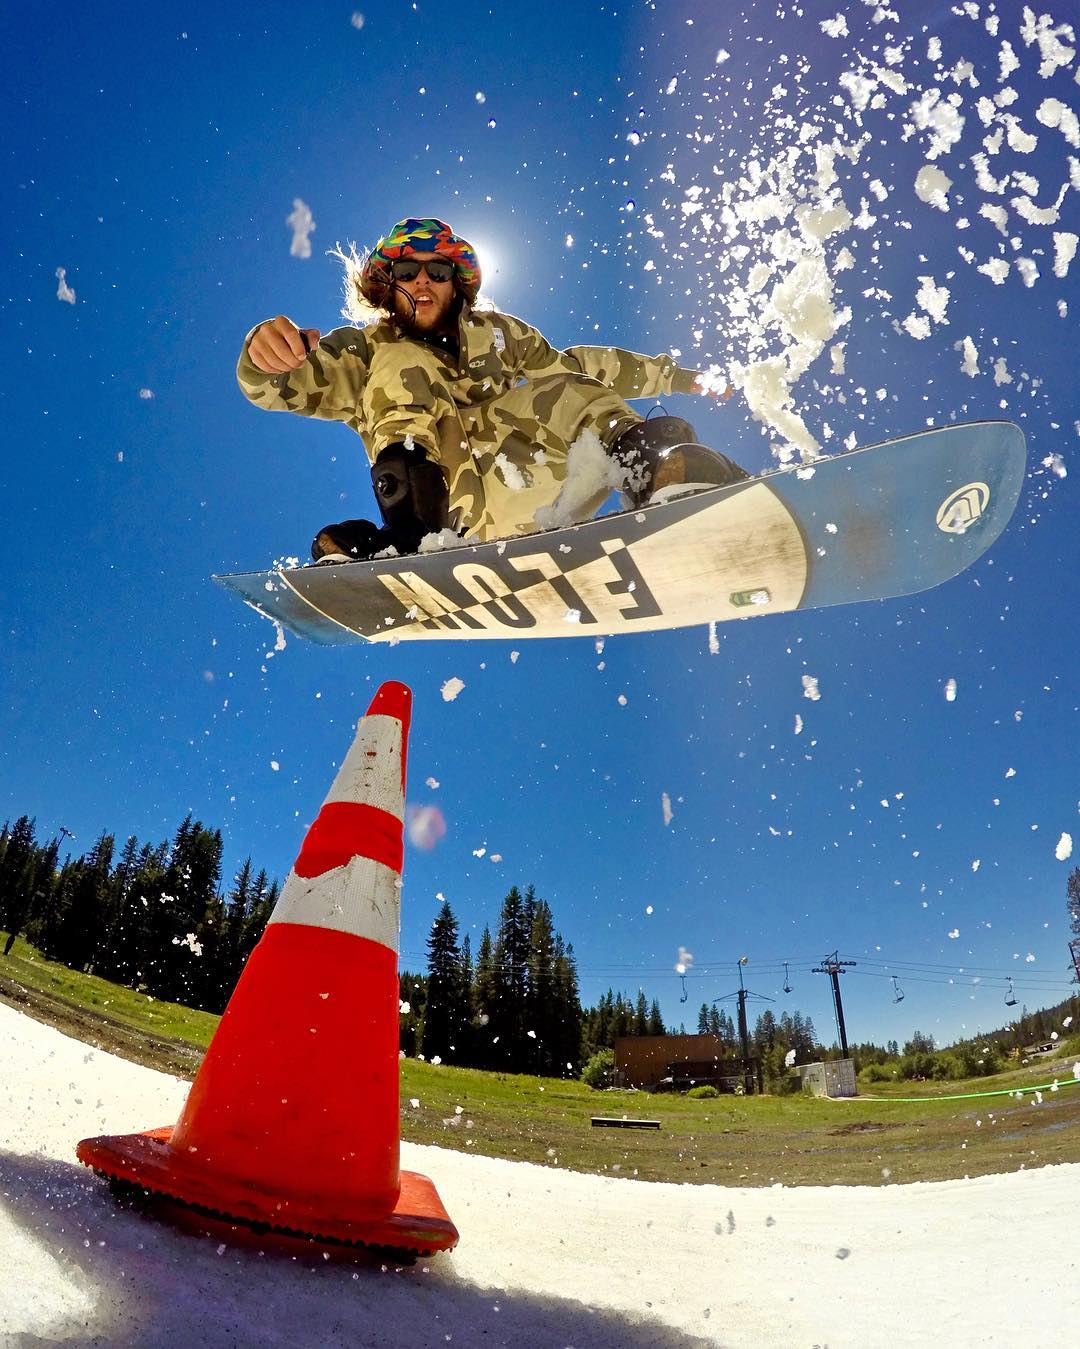 @timhumphreys having some summer fun popping cones at @woodwardtahoe. Shot with GoPro HERO4 in Burst Mode via Smart Remote and GoPole Base.  #gopro #gopole #gopolebase #snowboarding @flowsnowboardn